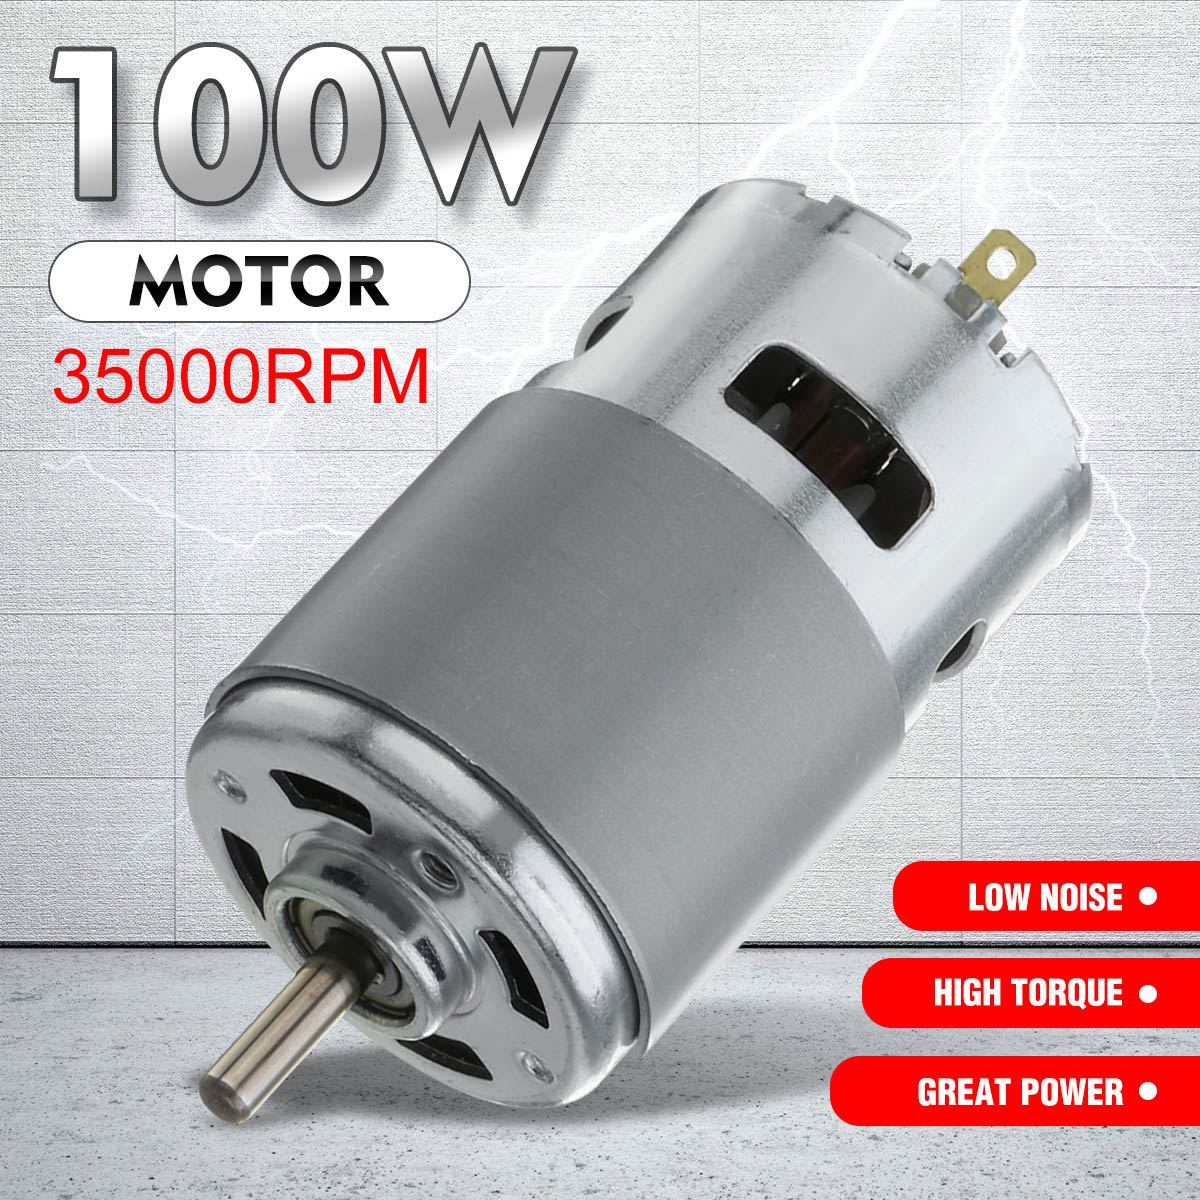 Hot 775 DC Motor Max 35000 RPM DC 12V-24V Ball Bearing Large Torque High Power Low Noise Gear Motor Electronic Component Motor